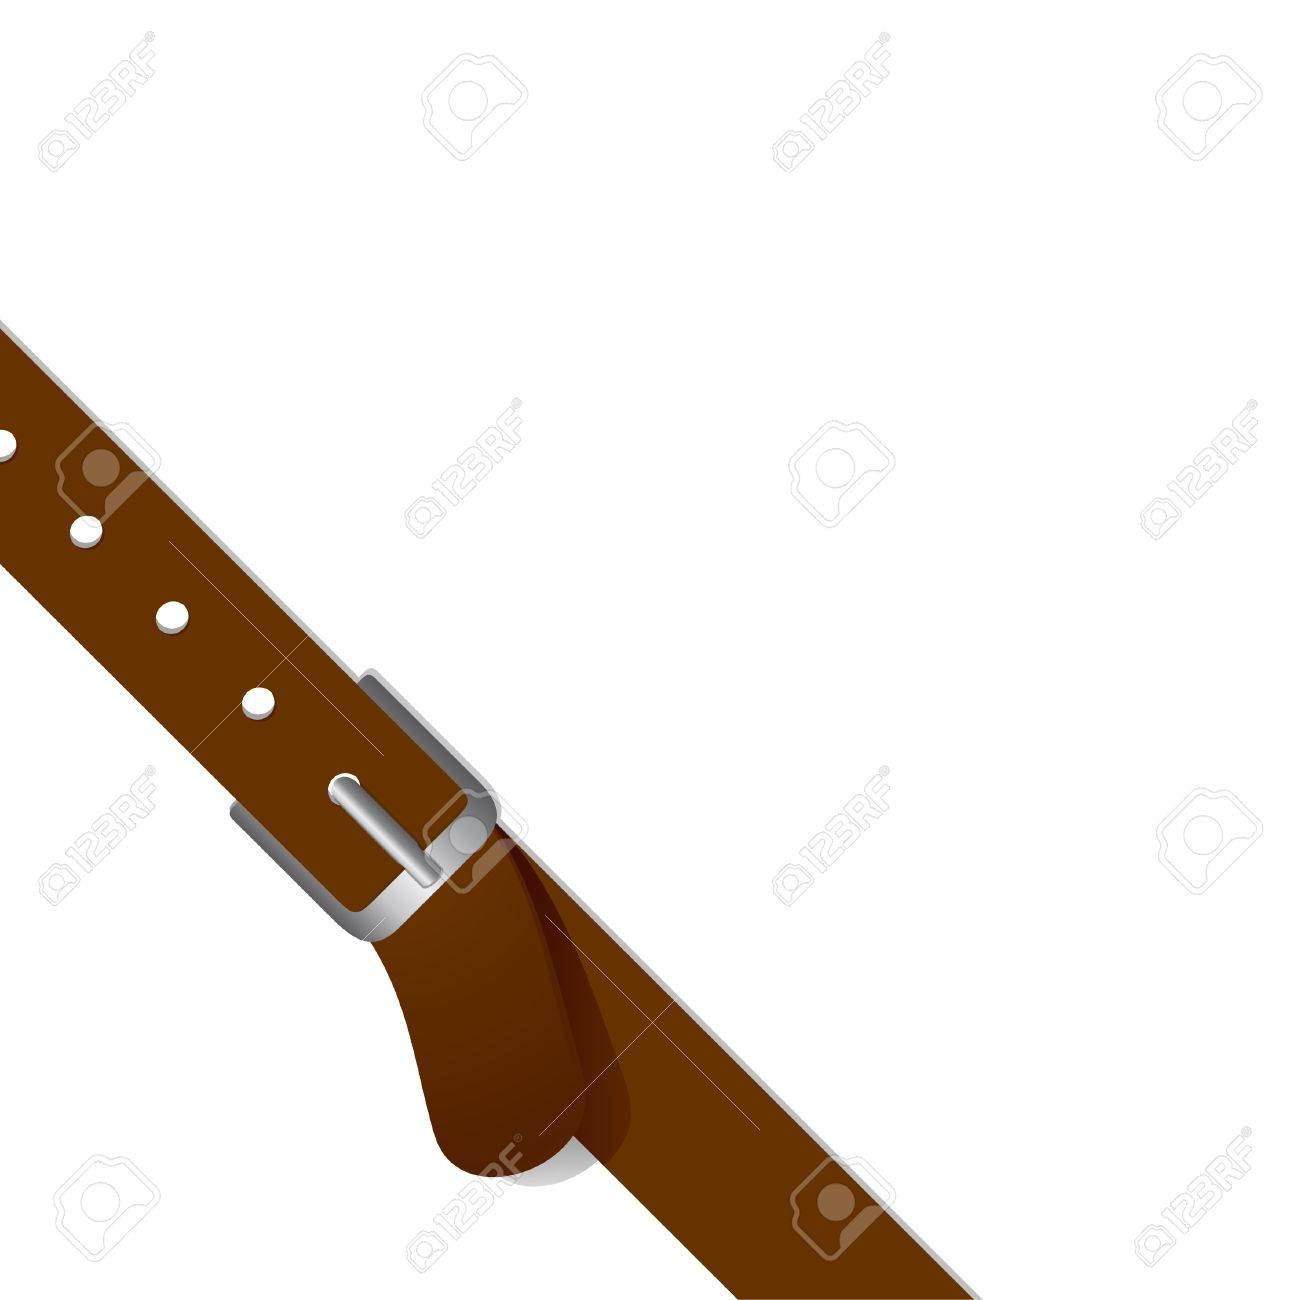 Drawing belt to place it in the corner of a design Stock Vector - 9513761